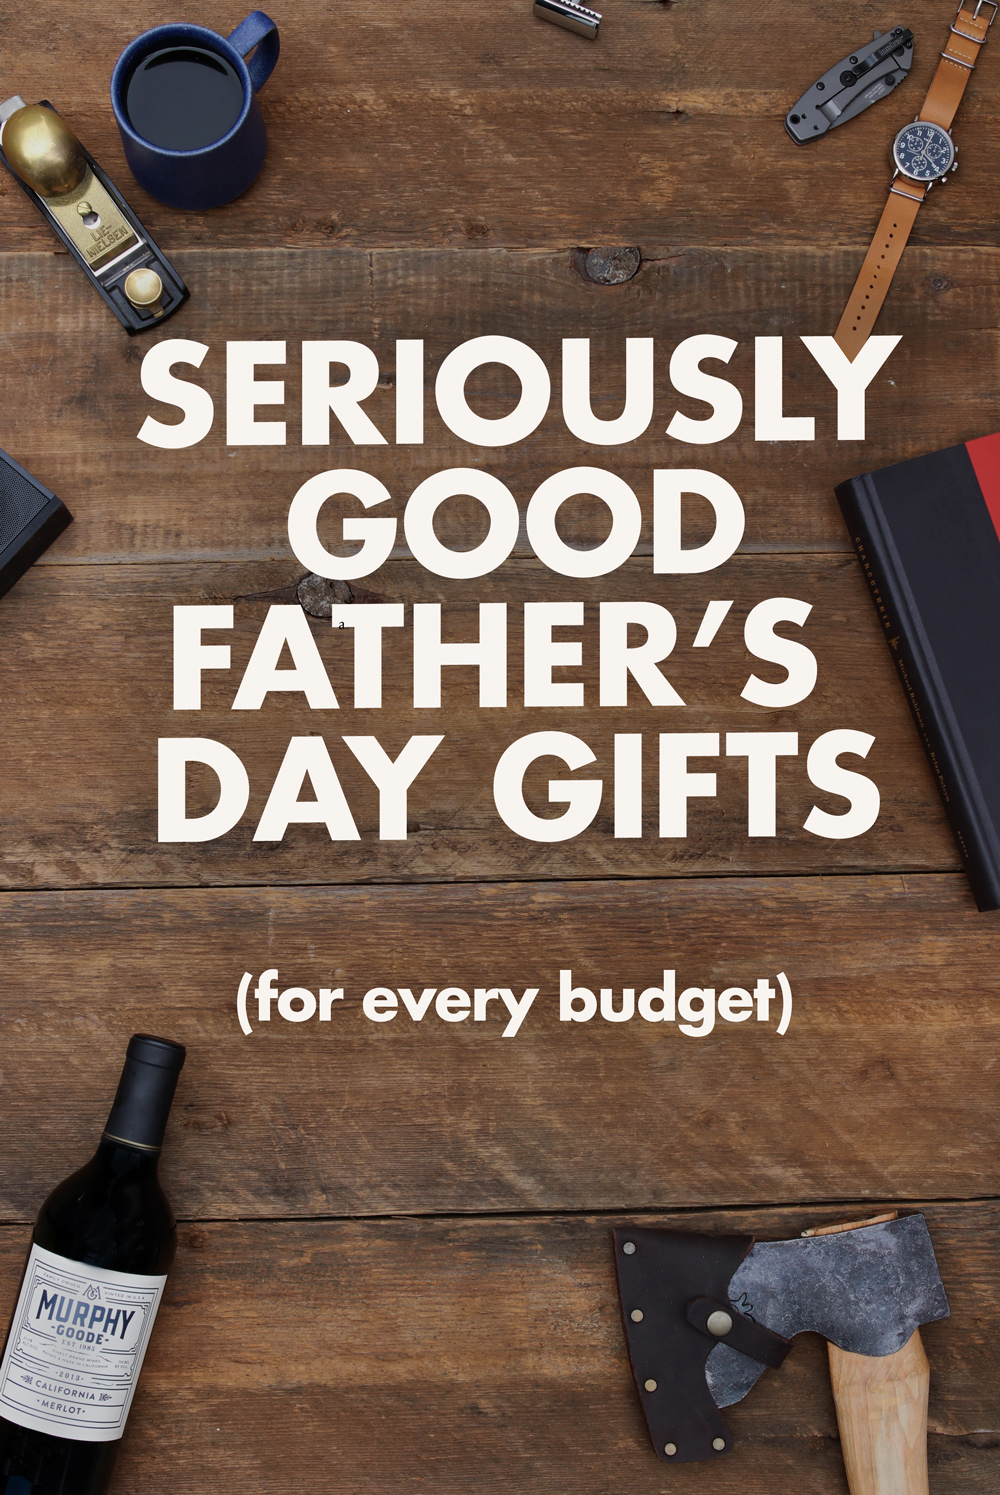 Gifts For Dad, Birthday Gifts For Dad | UncommonGoodsTrending Gifts · Handmade Gifts · 30% Exclusive · Price Matching.